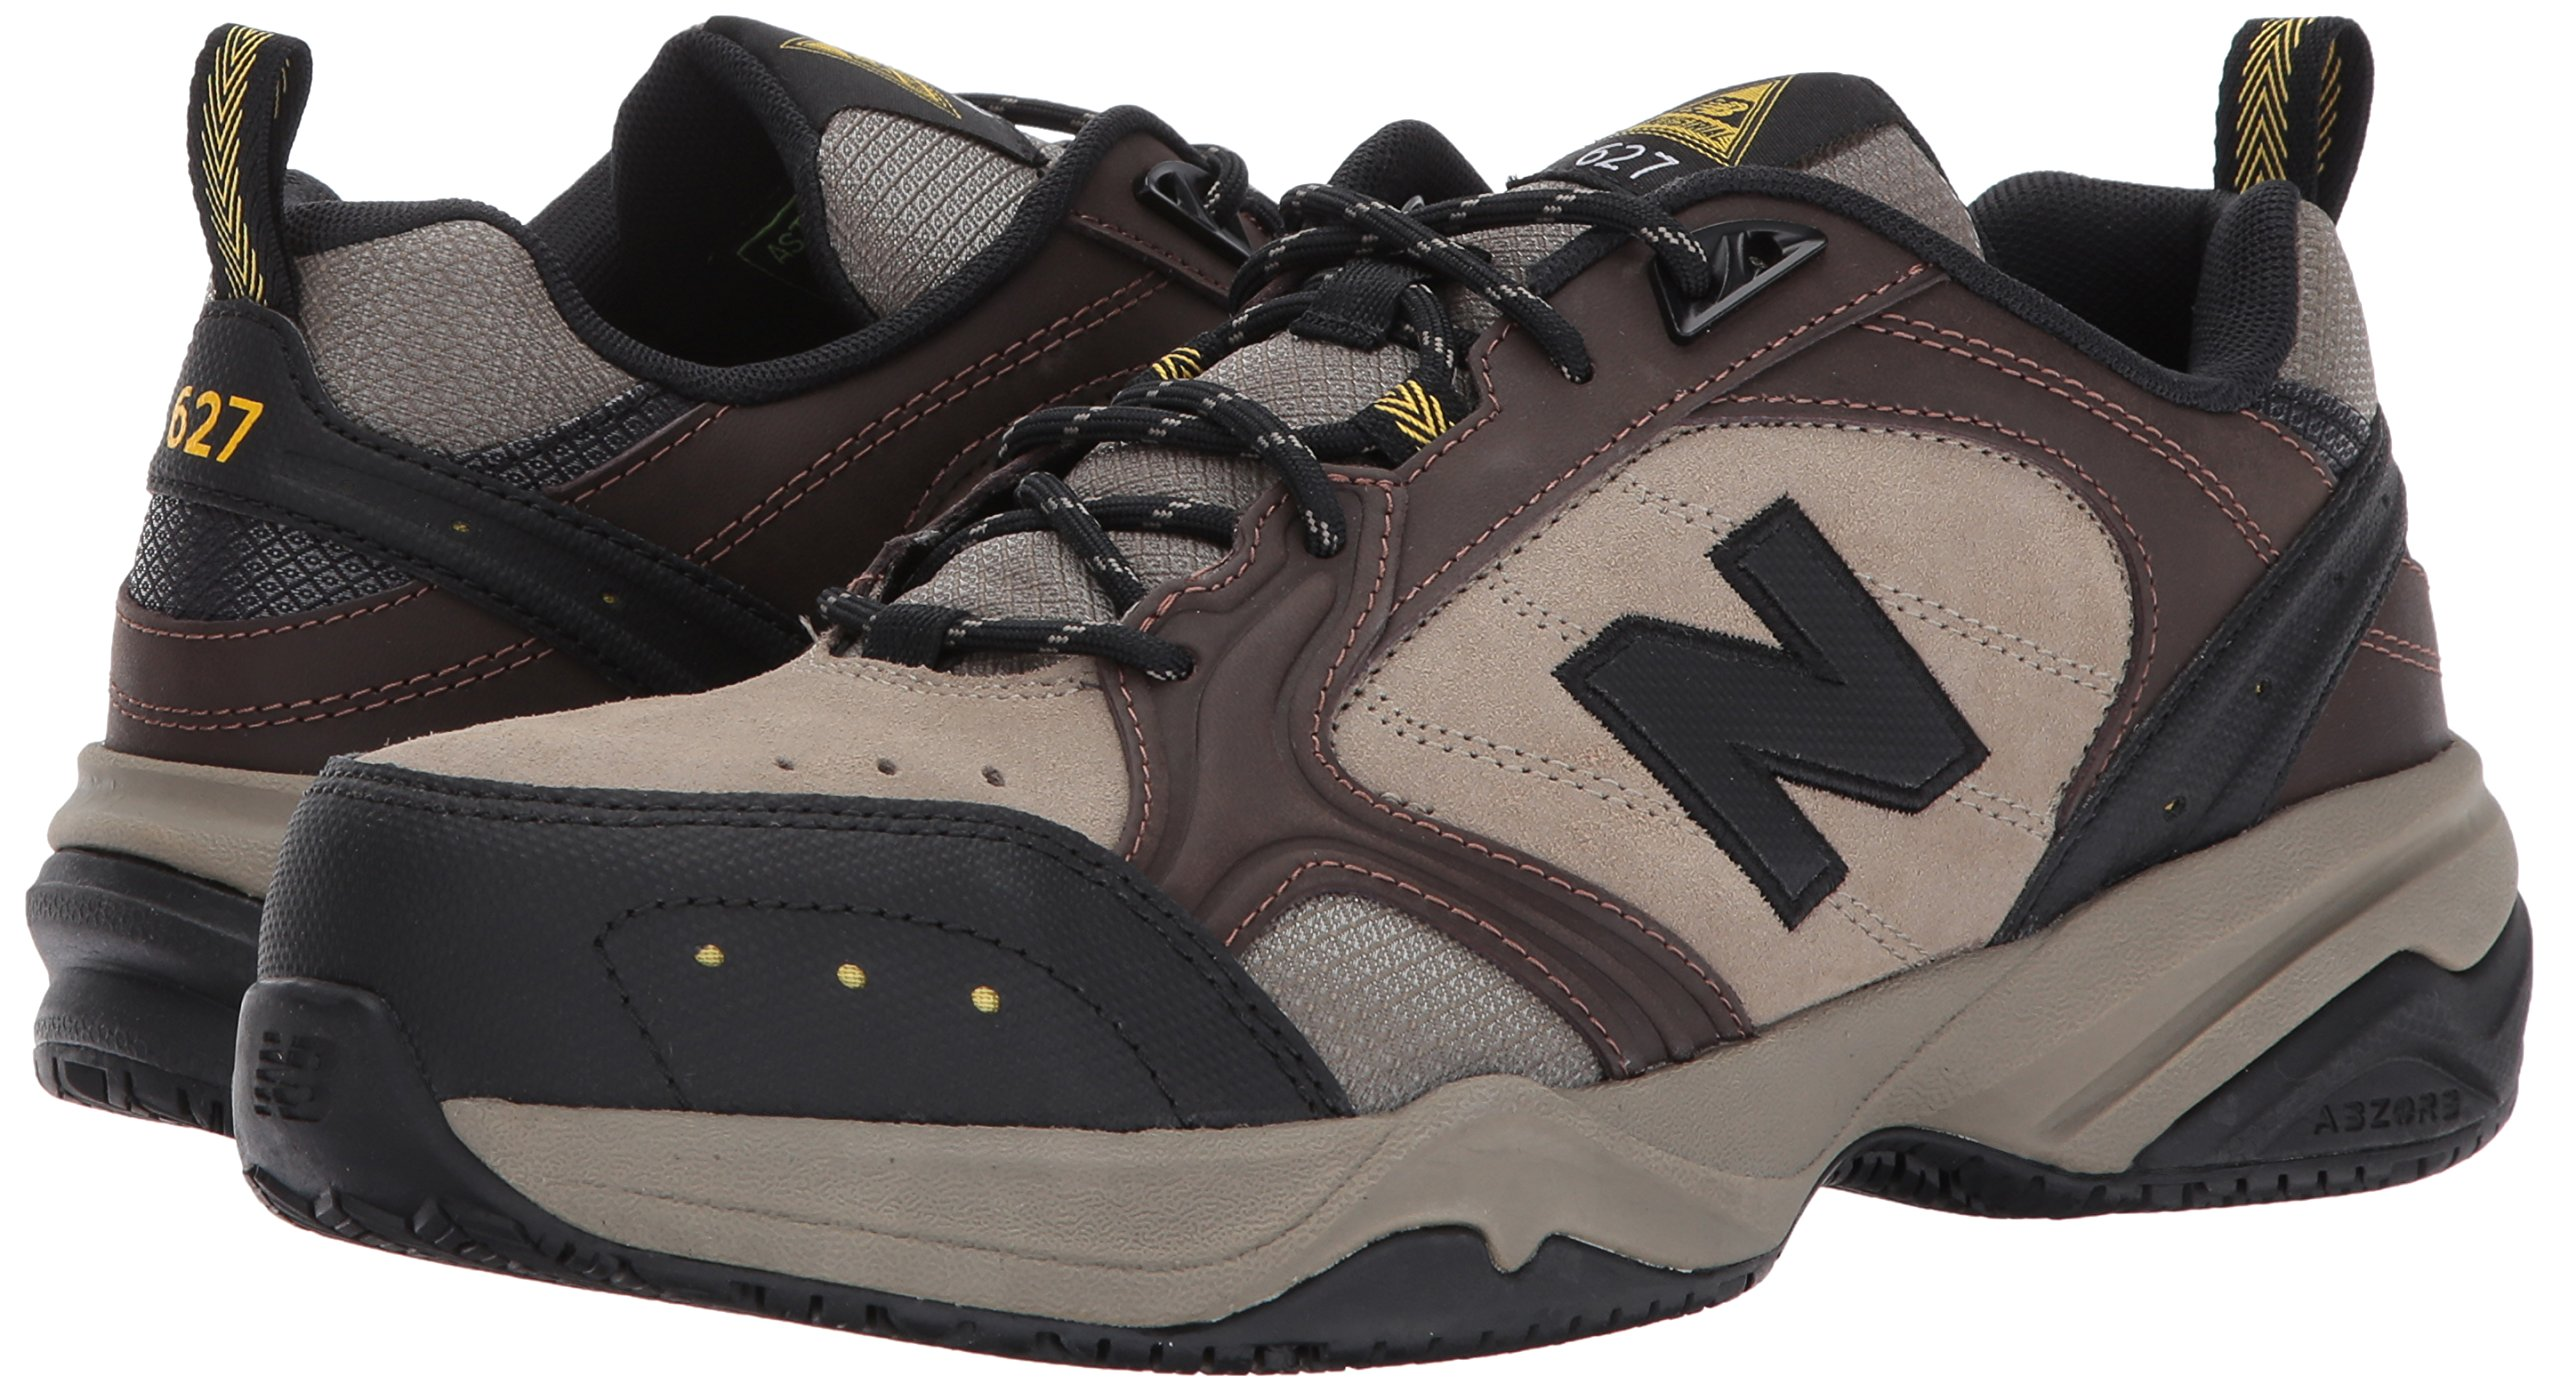 New Balance Men's MID627 Steel-Toe Work Shoe,Brown,18 4E US by New Balance (Image #6)